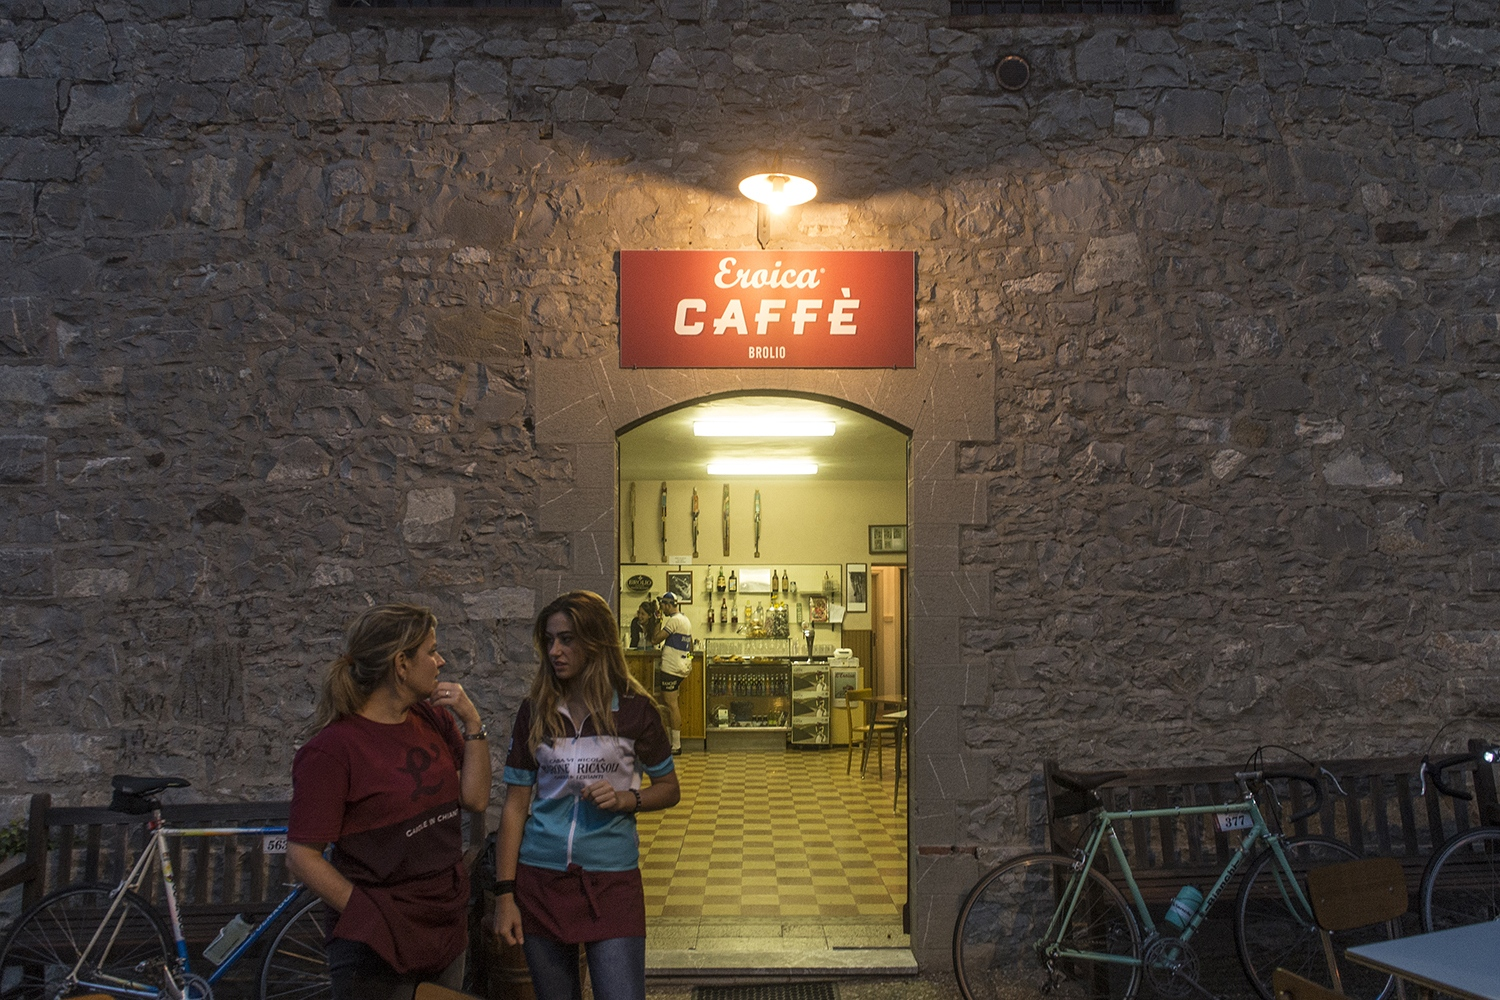 Eroica Cafè - serving cappuccinos and brioches early in the morning, before the october traditional tuscan vintage cycle race